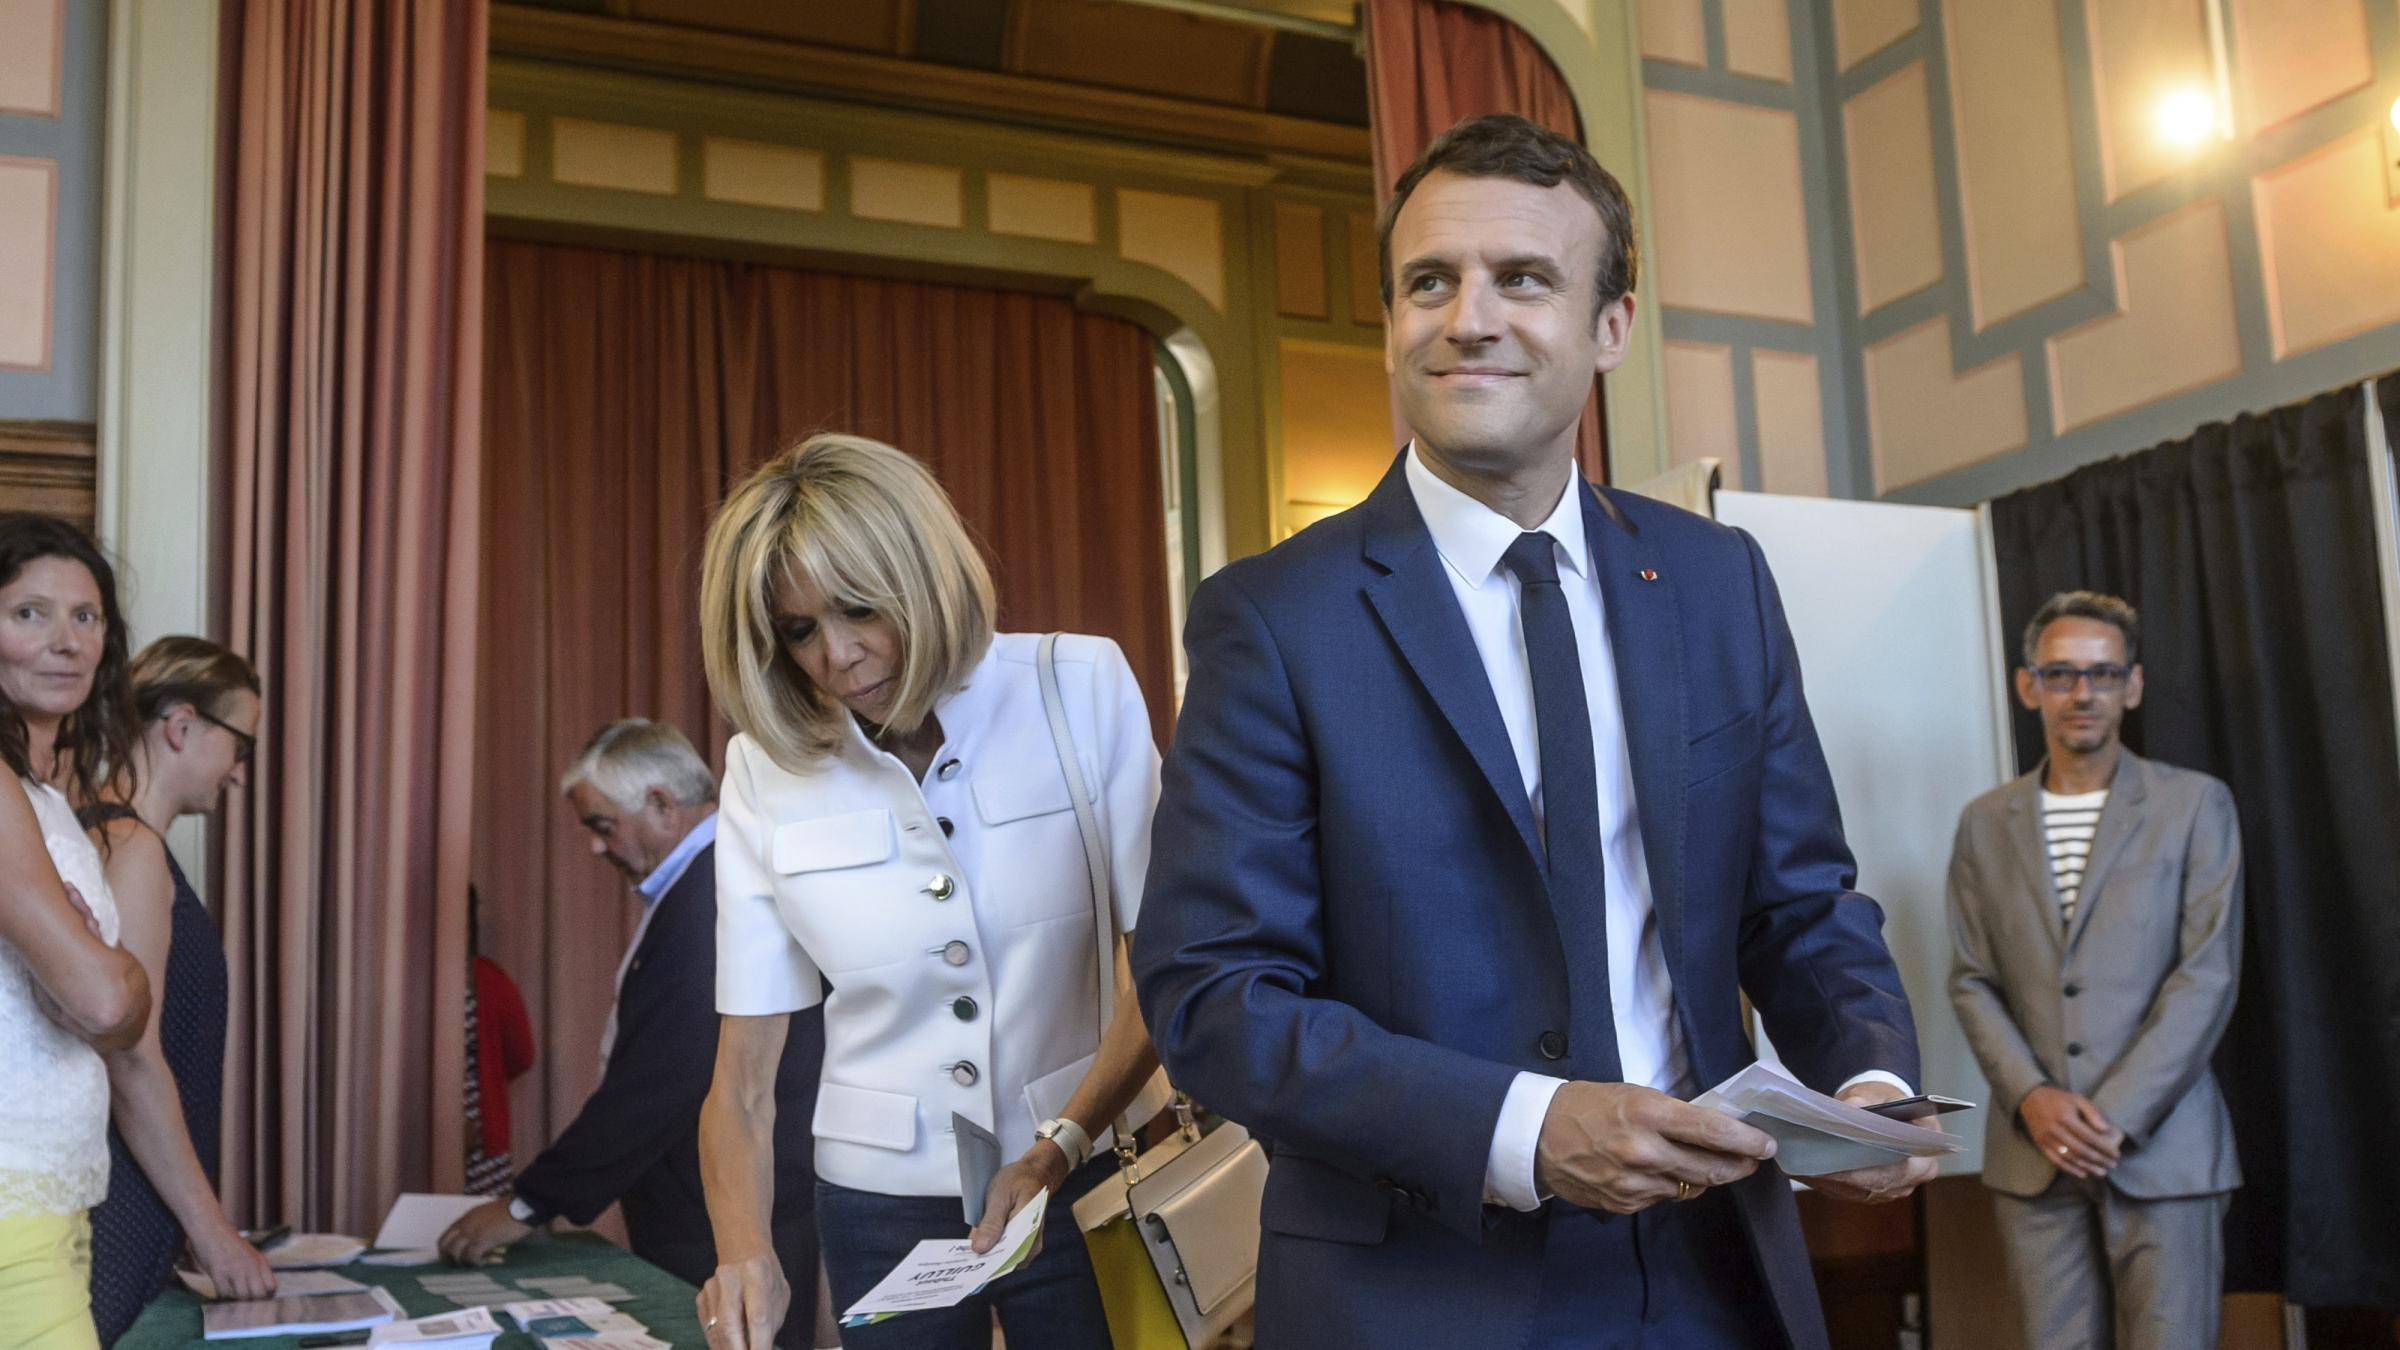 Pollsters project Macron on course to dominate parliament